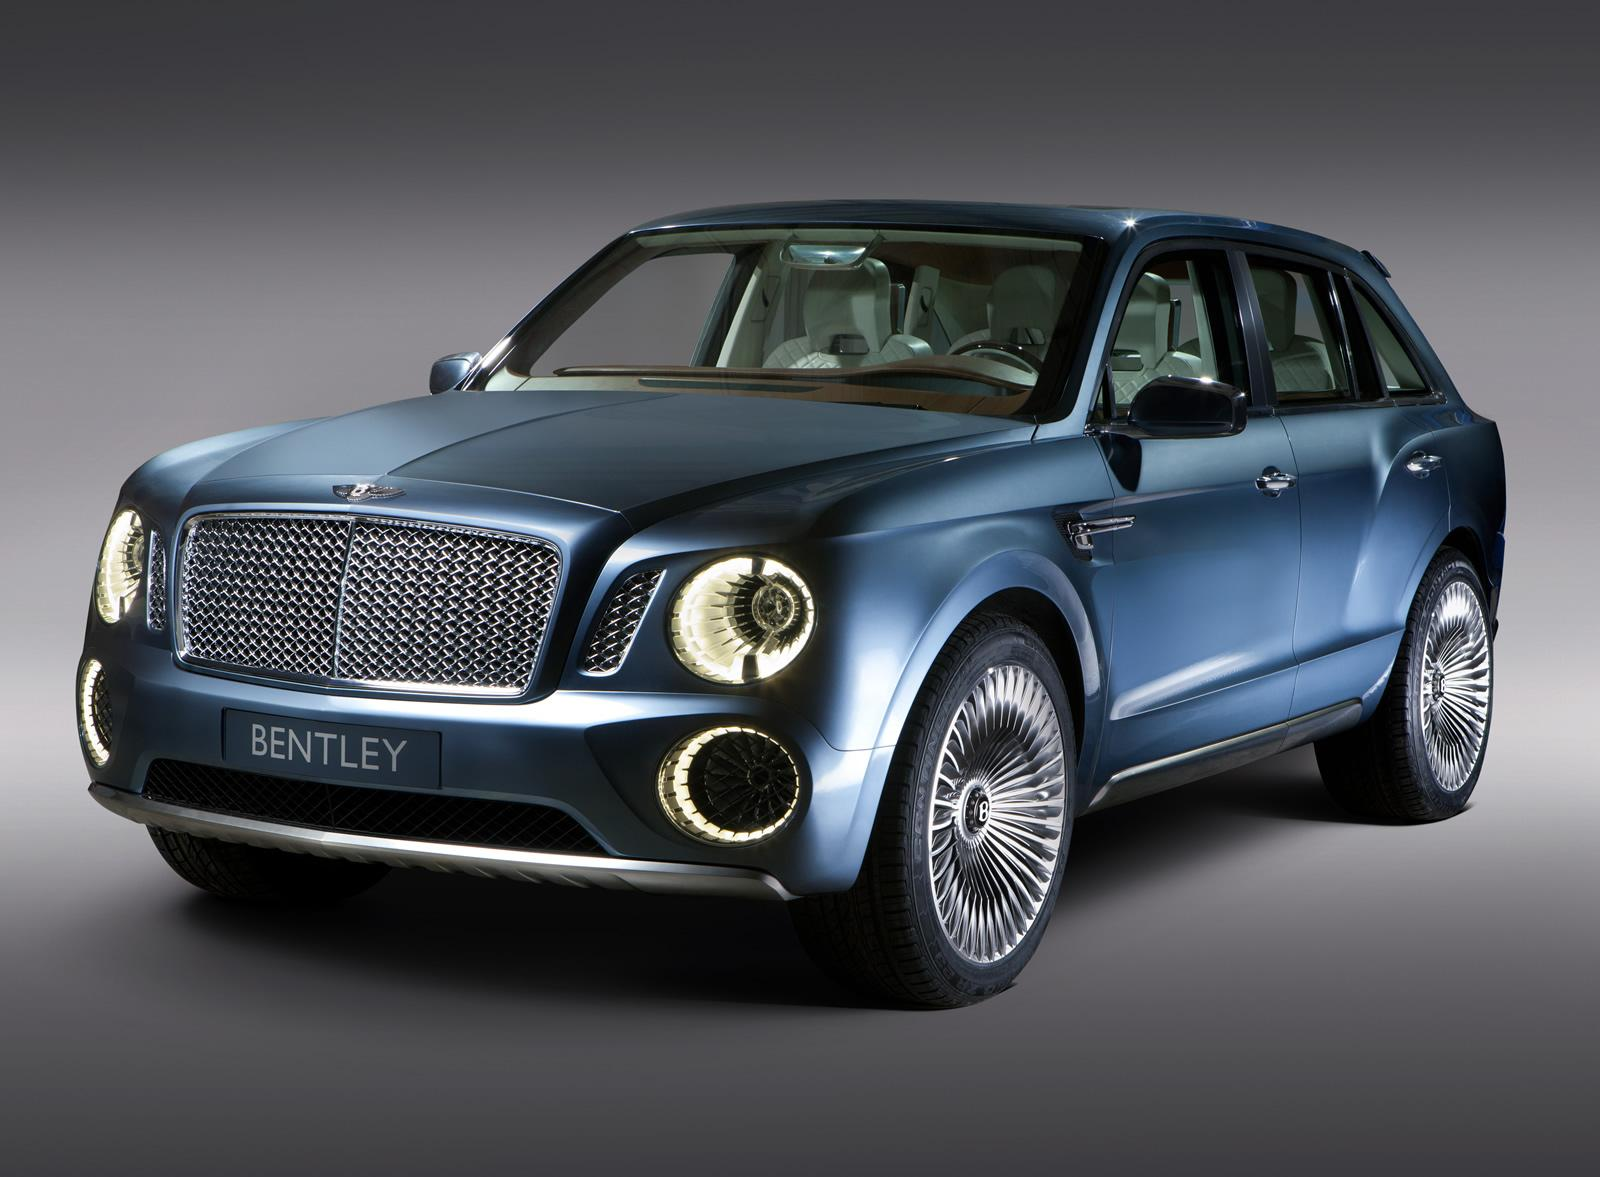 2013 Bentley EXP 9 F SUV Concept 2013 Bentley EXP 9 F SUV Concept   An Updated Tech Report